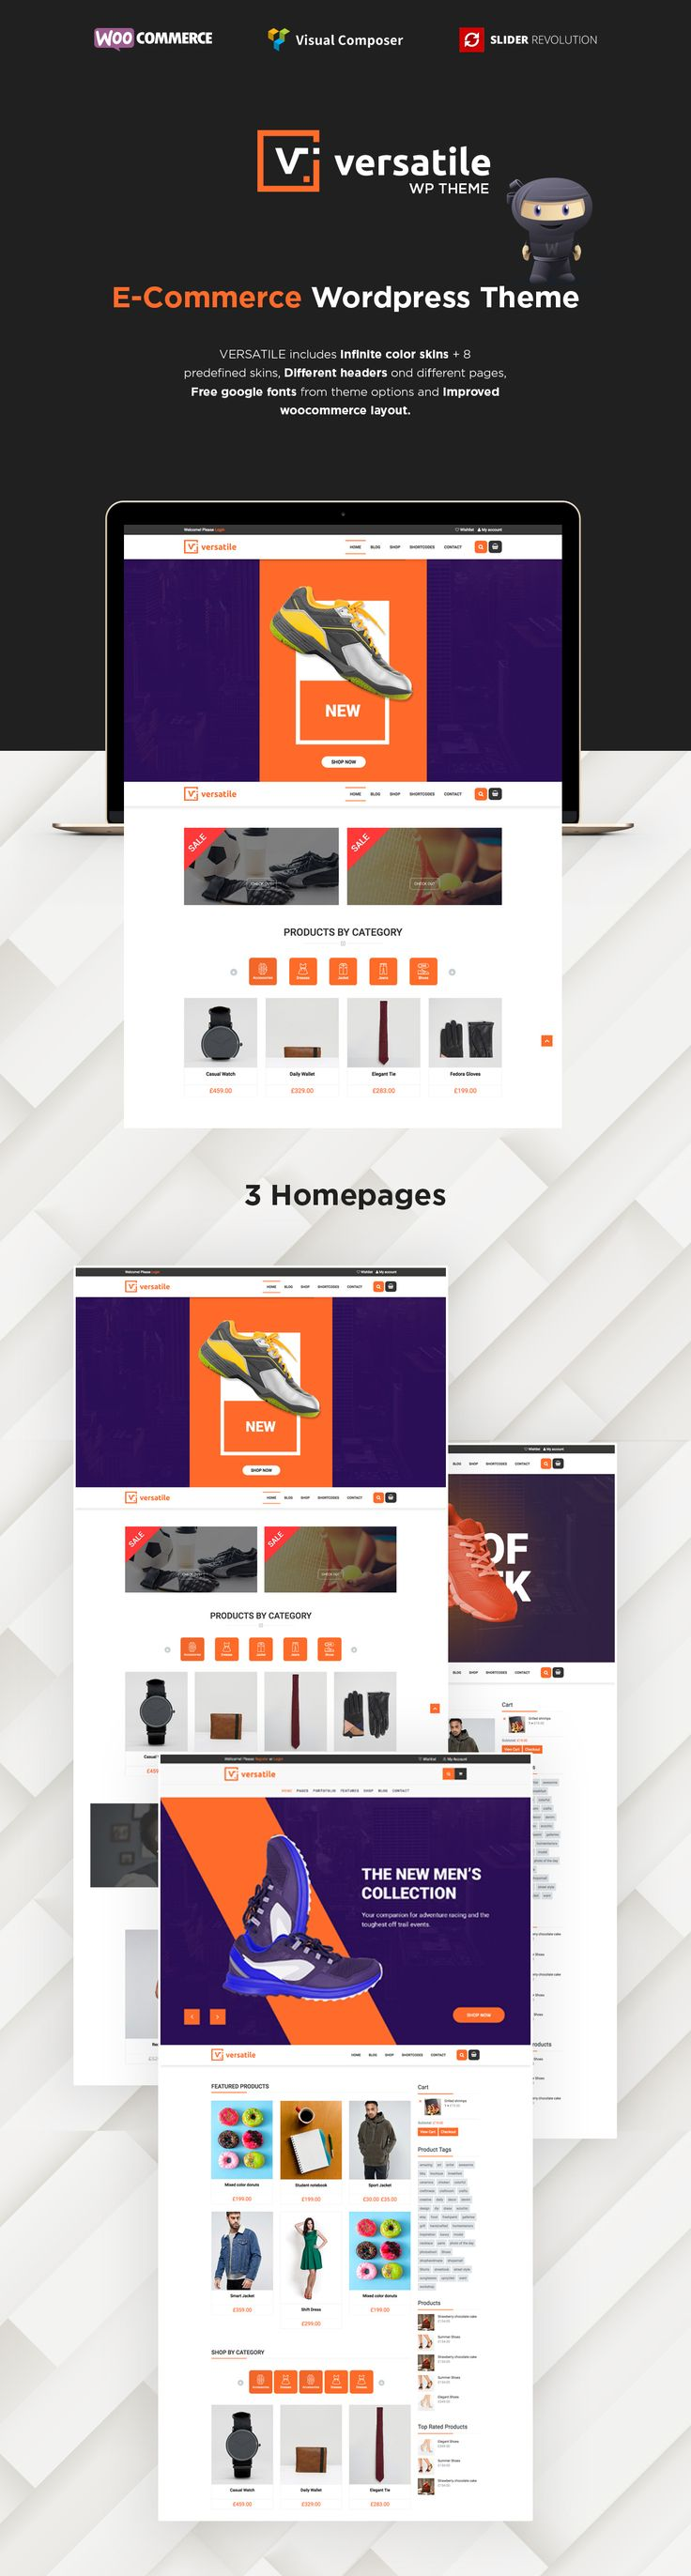 Versatile - Multipurpose WooCommerce WordPress Theme by modeltheme